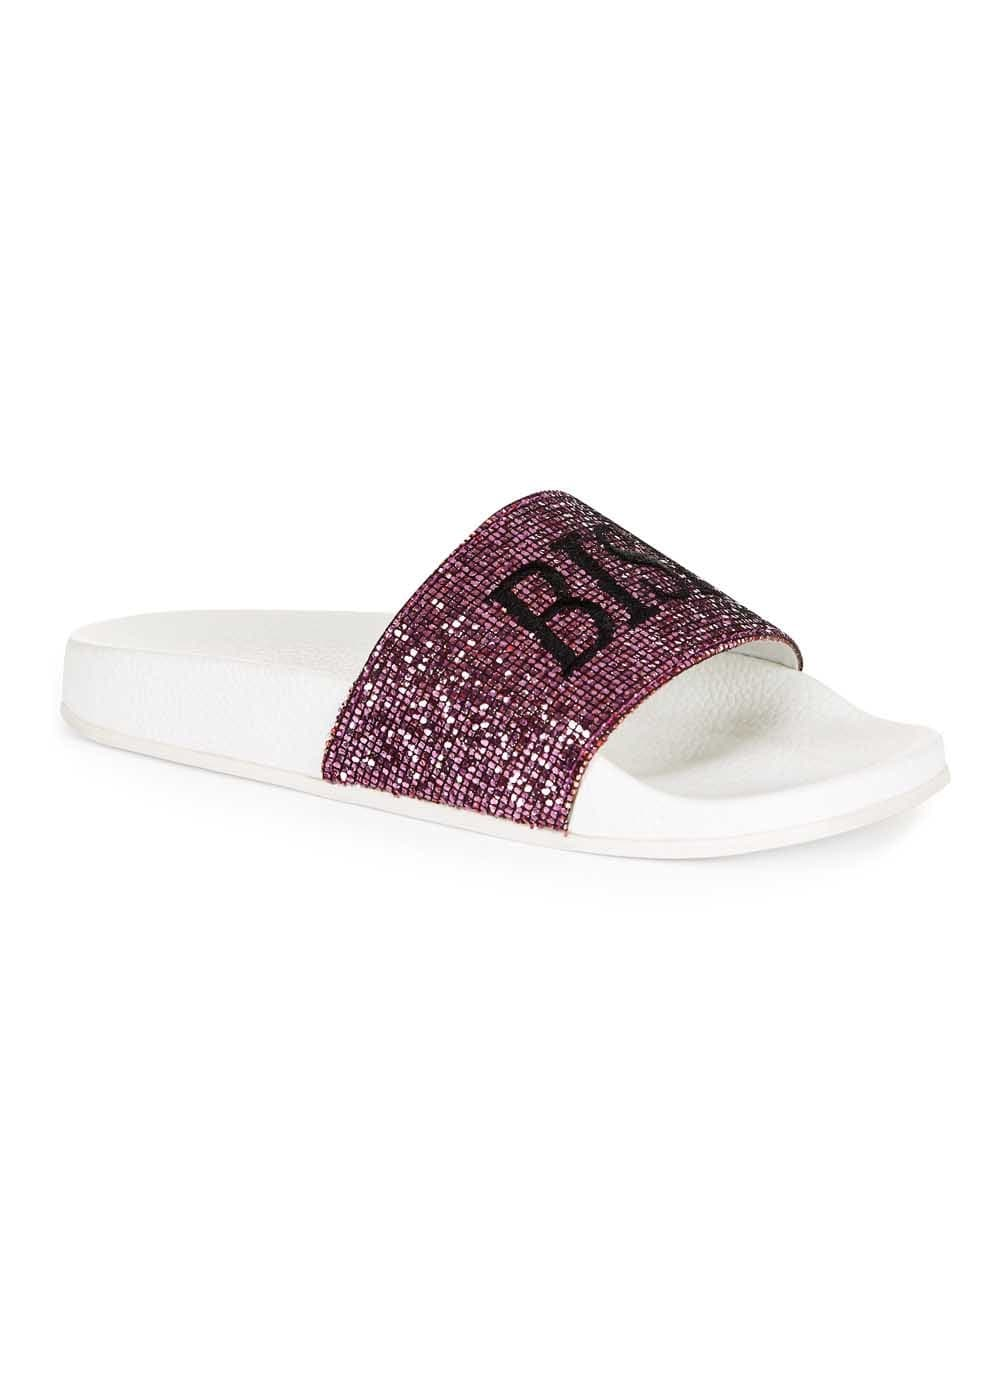 Girls Bish Please Pool Sliders-TeenzShop